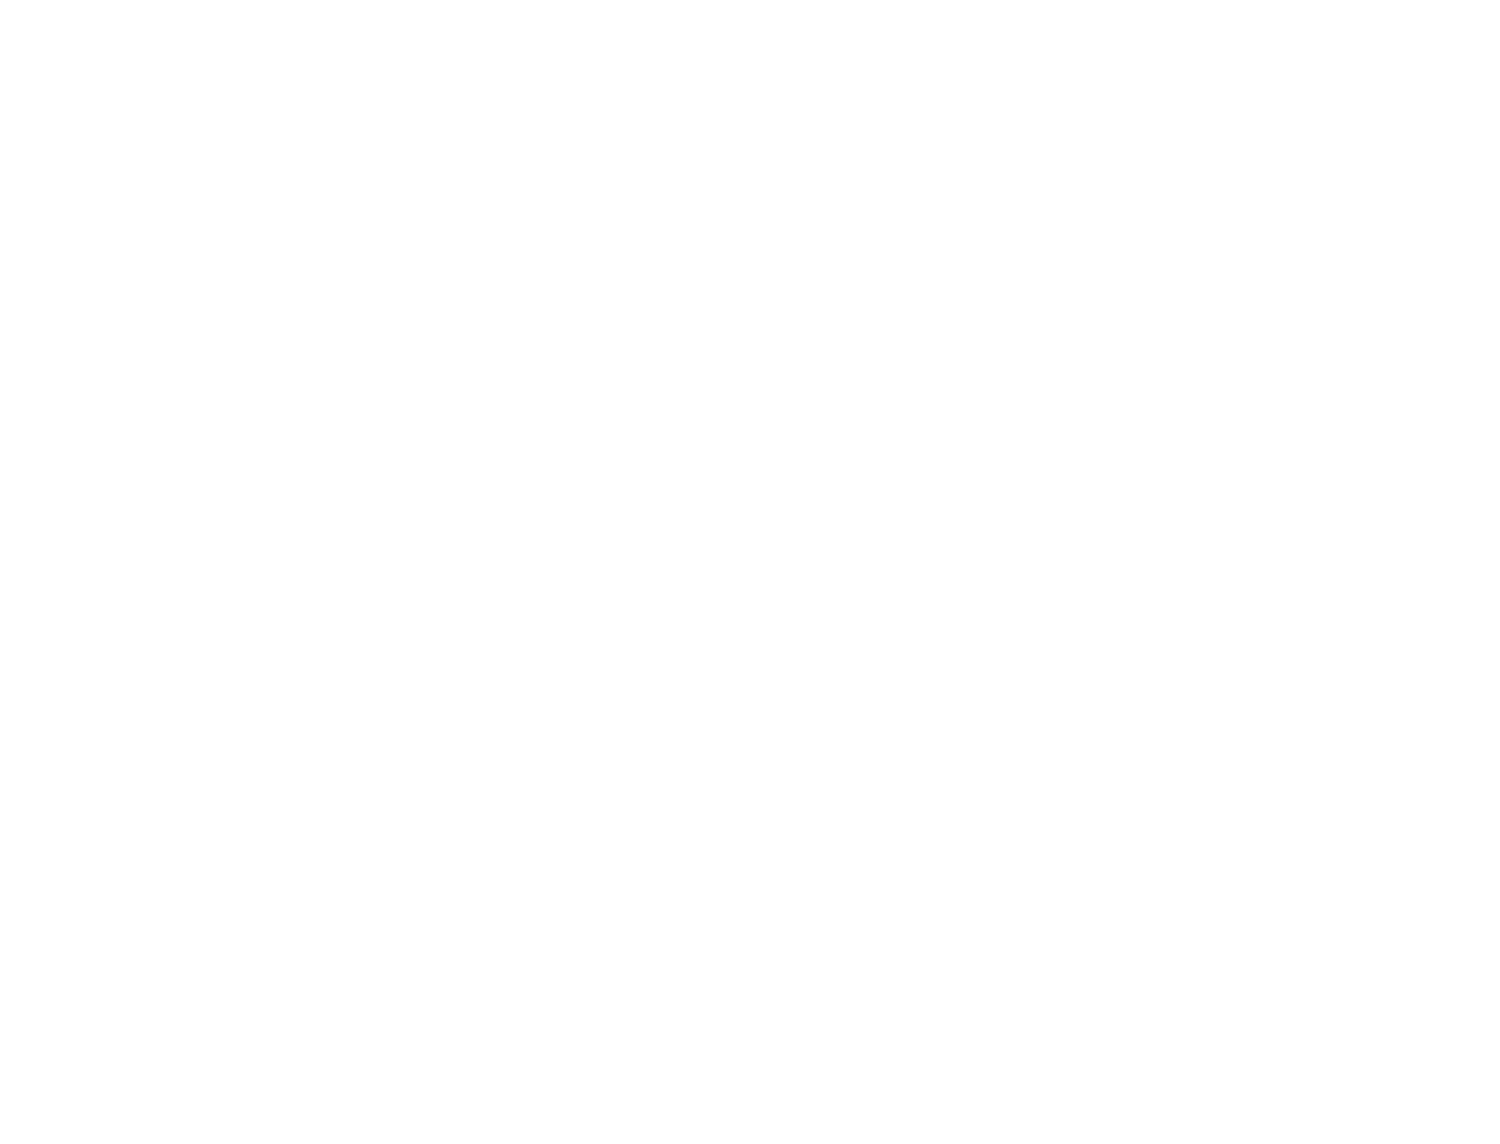 GOOD NEWS CHURCH